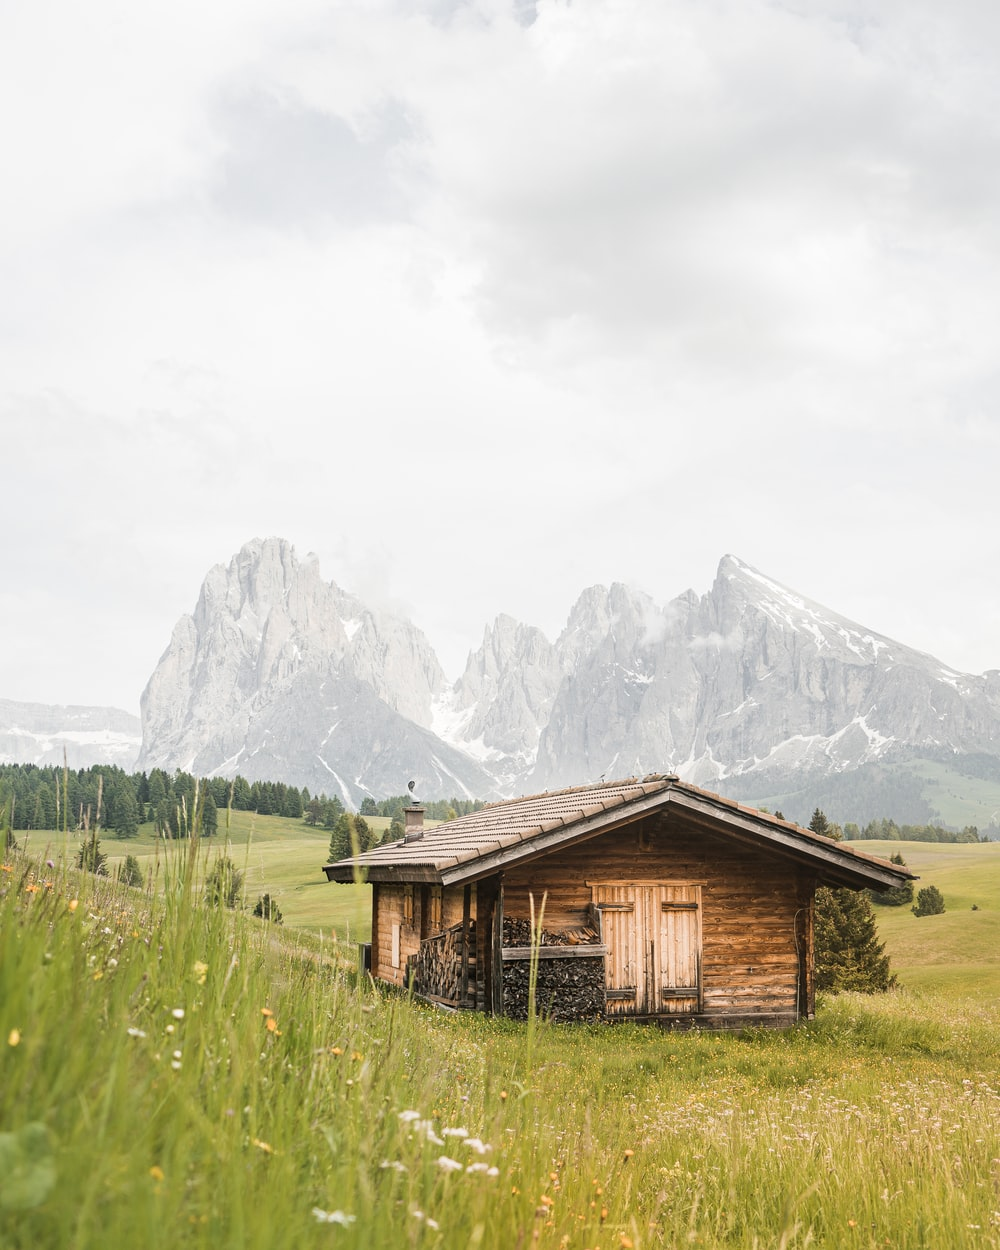 brown wooden house on green grass field near mountain during daytime